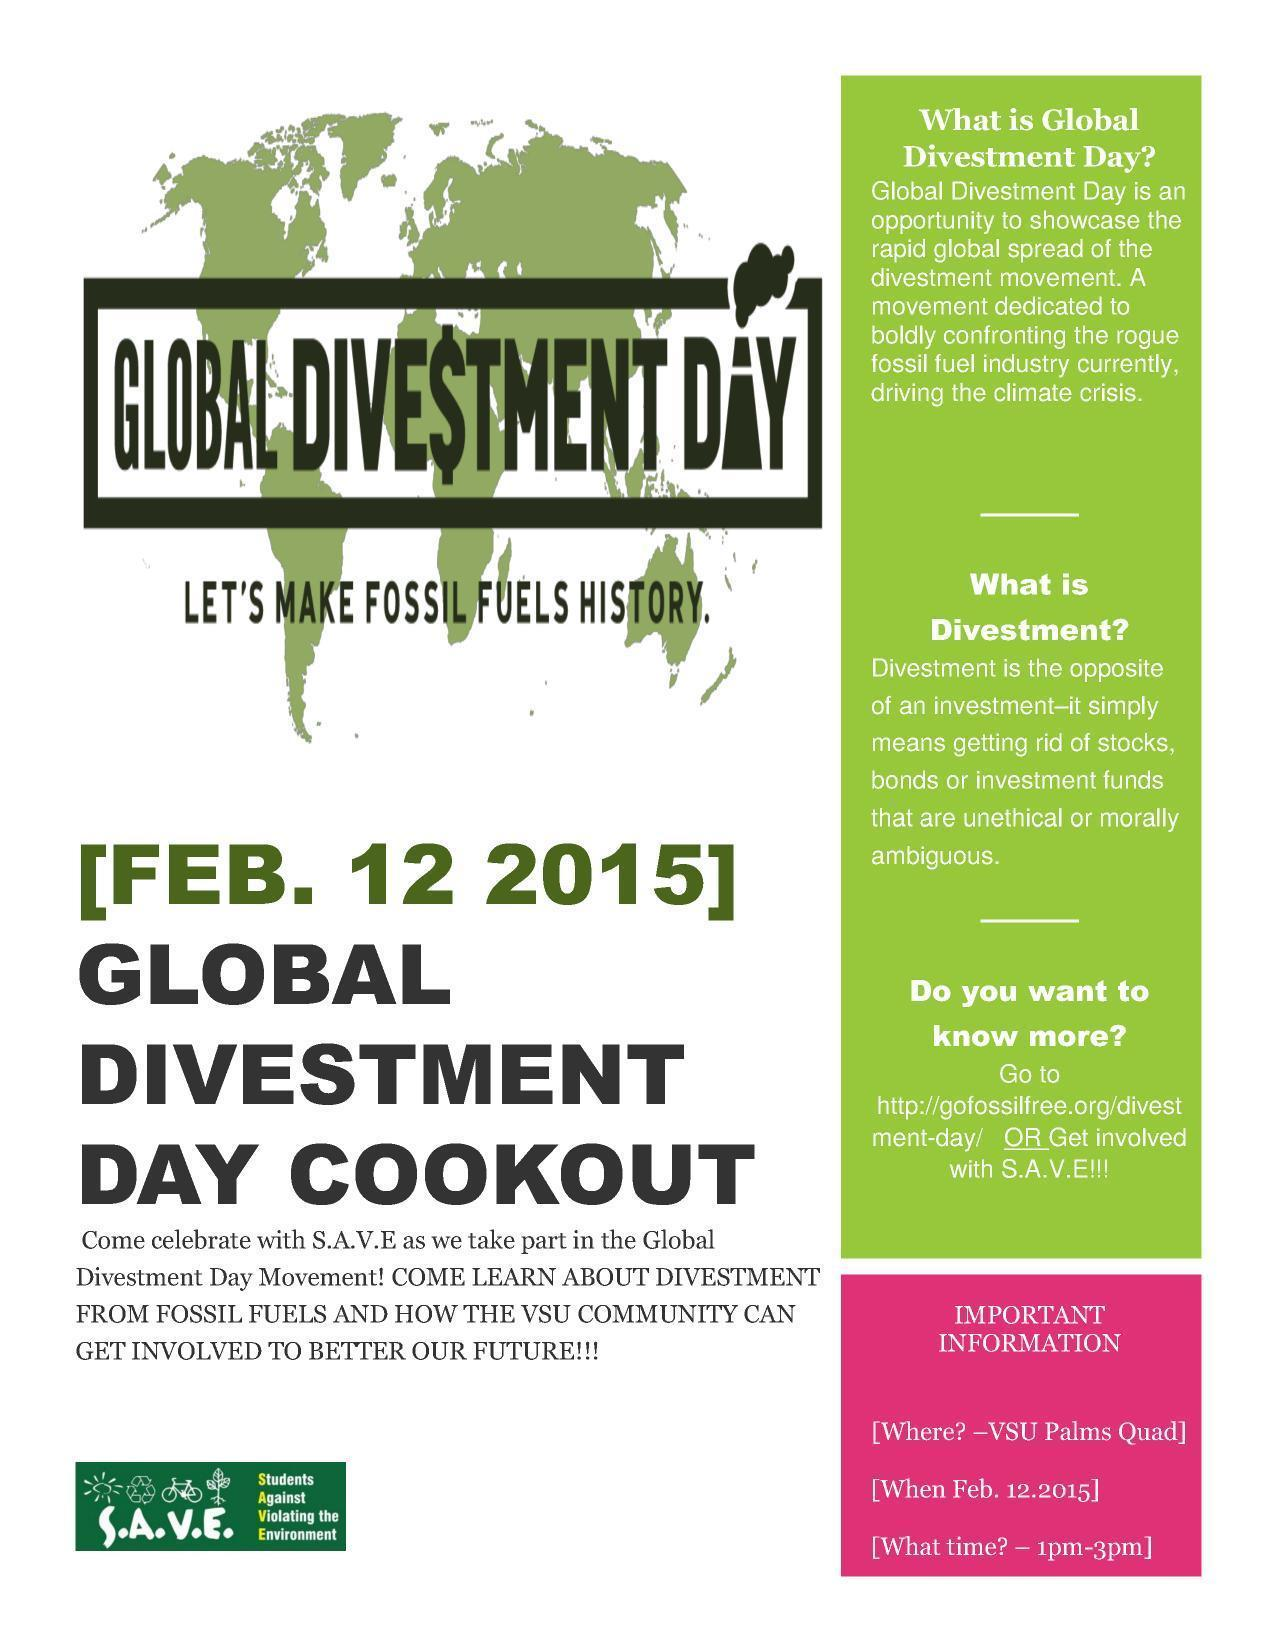 1275x1650 Flyer, in Global Divestment Day Cookout, by S.A.V.E., for SpectraBusters.org, 12 February 2015